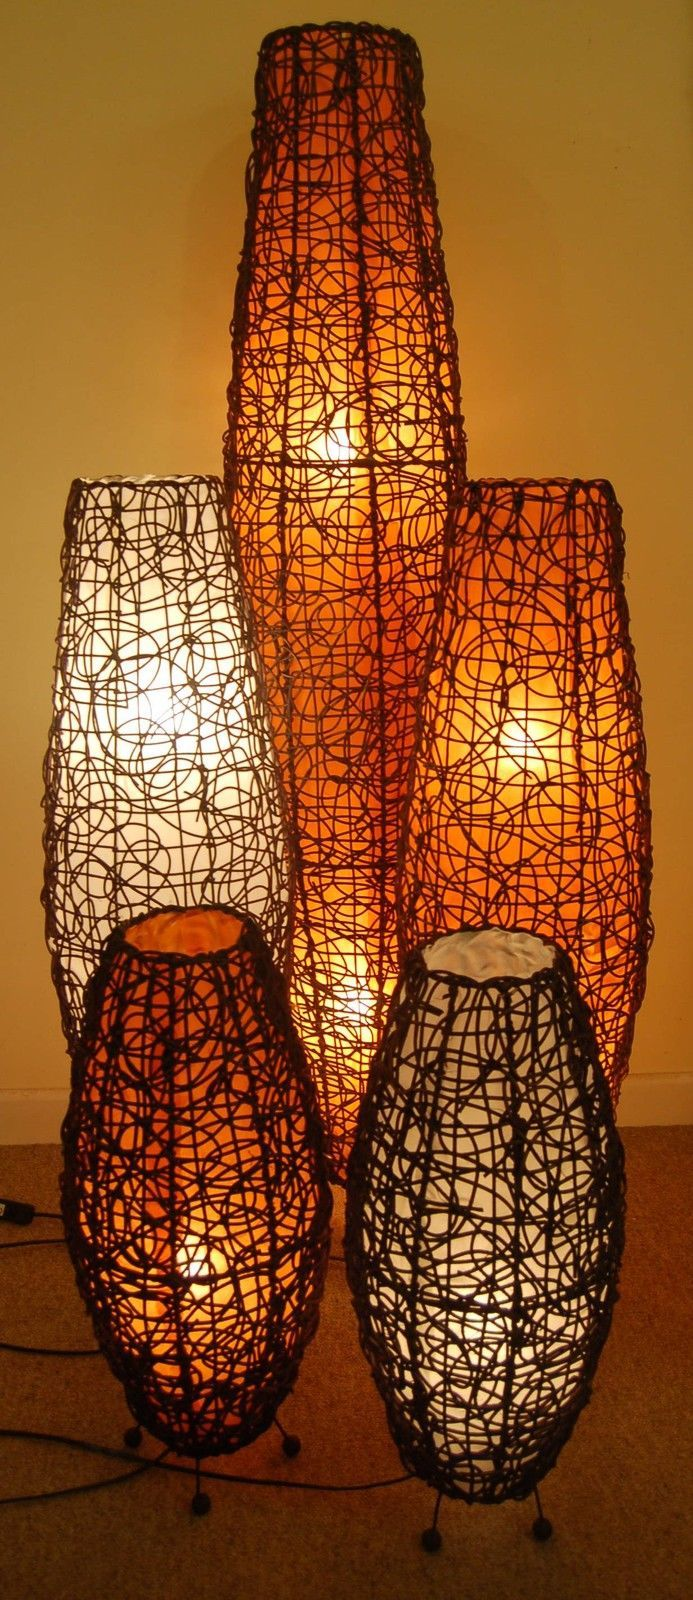 TableFloor Lamp Apollo Lamp With Rattan Handcrafted